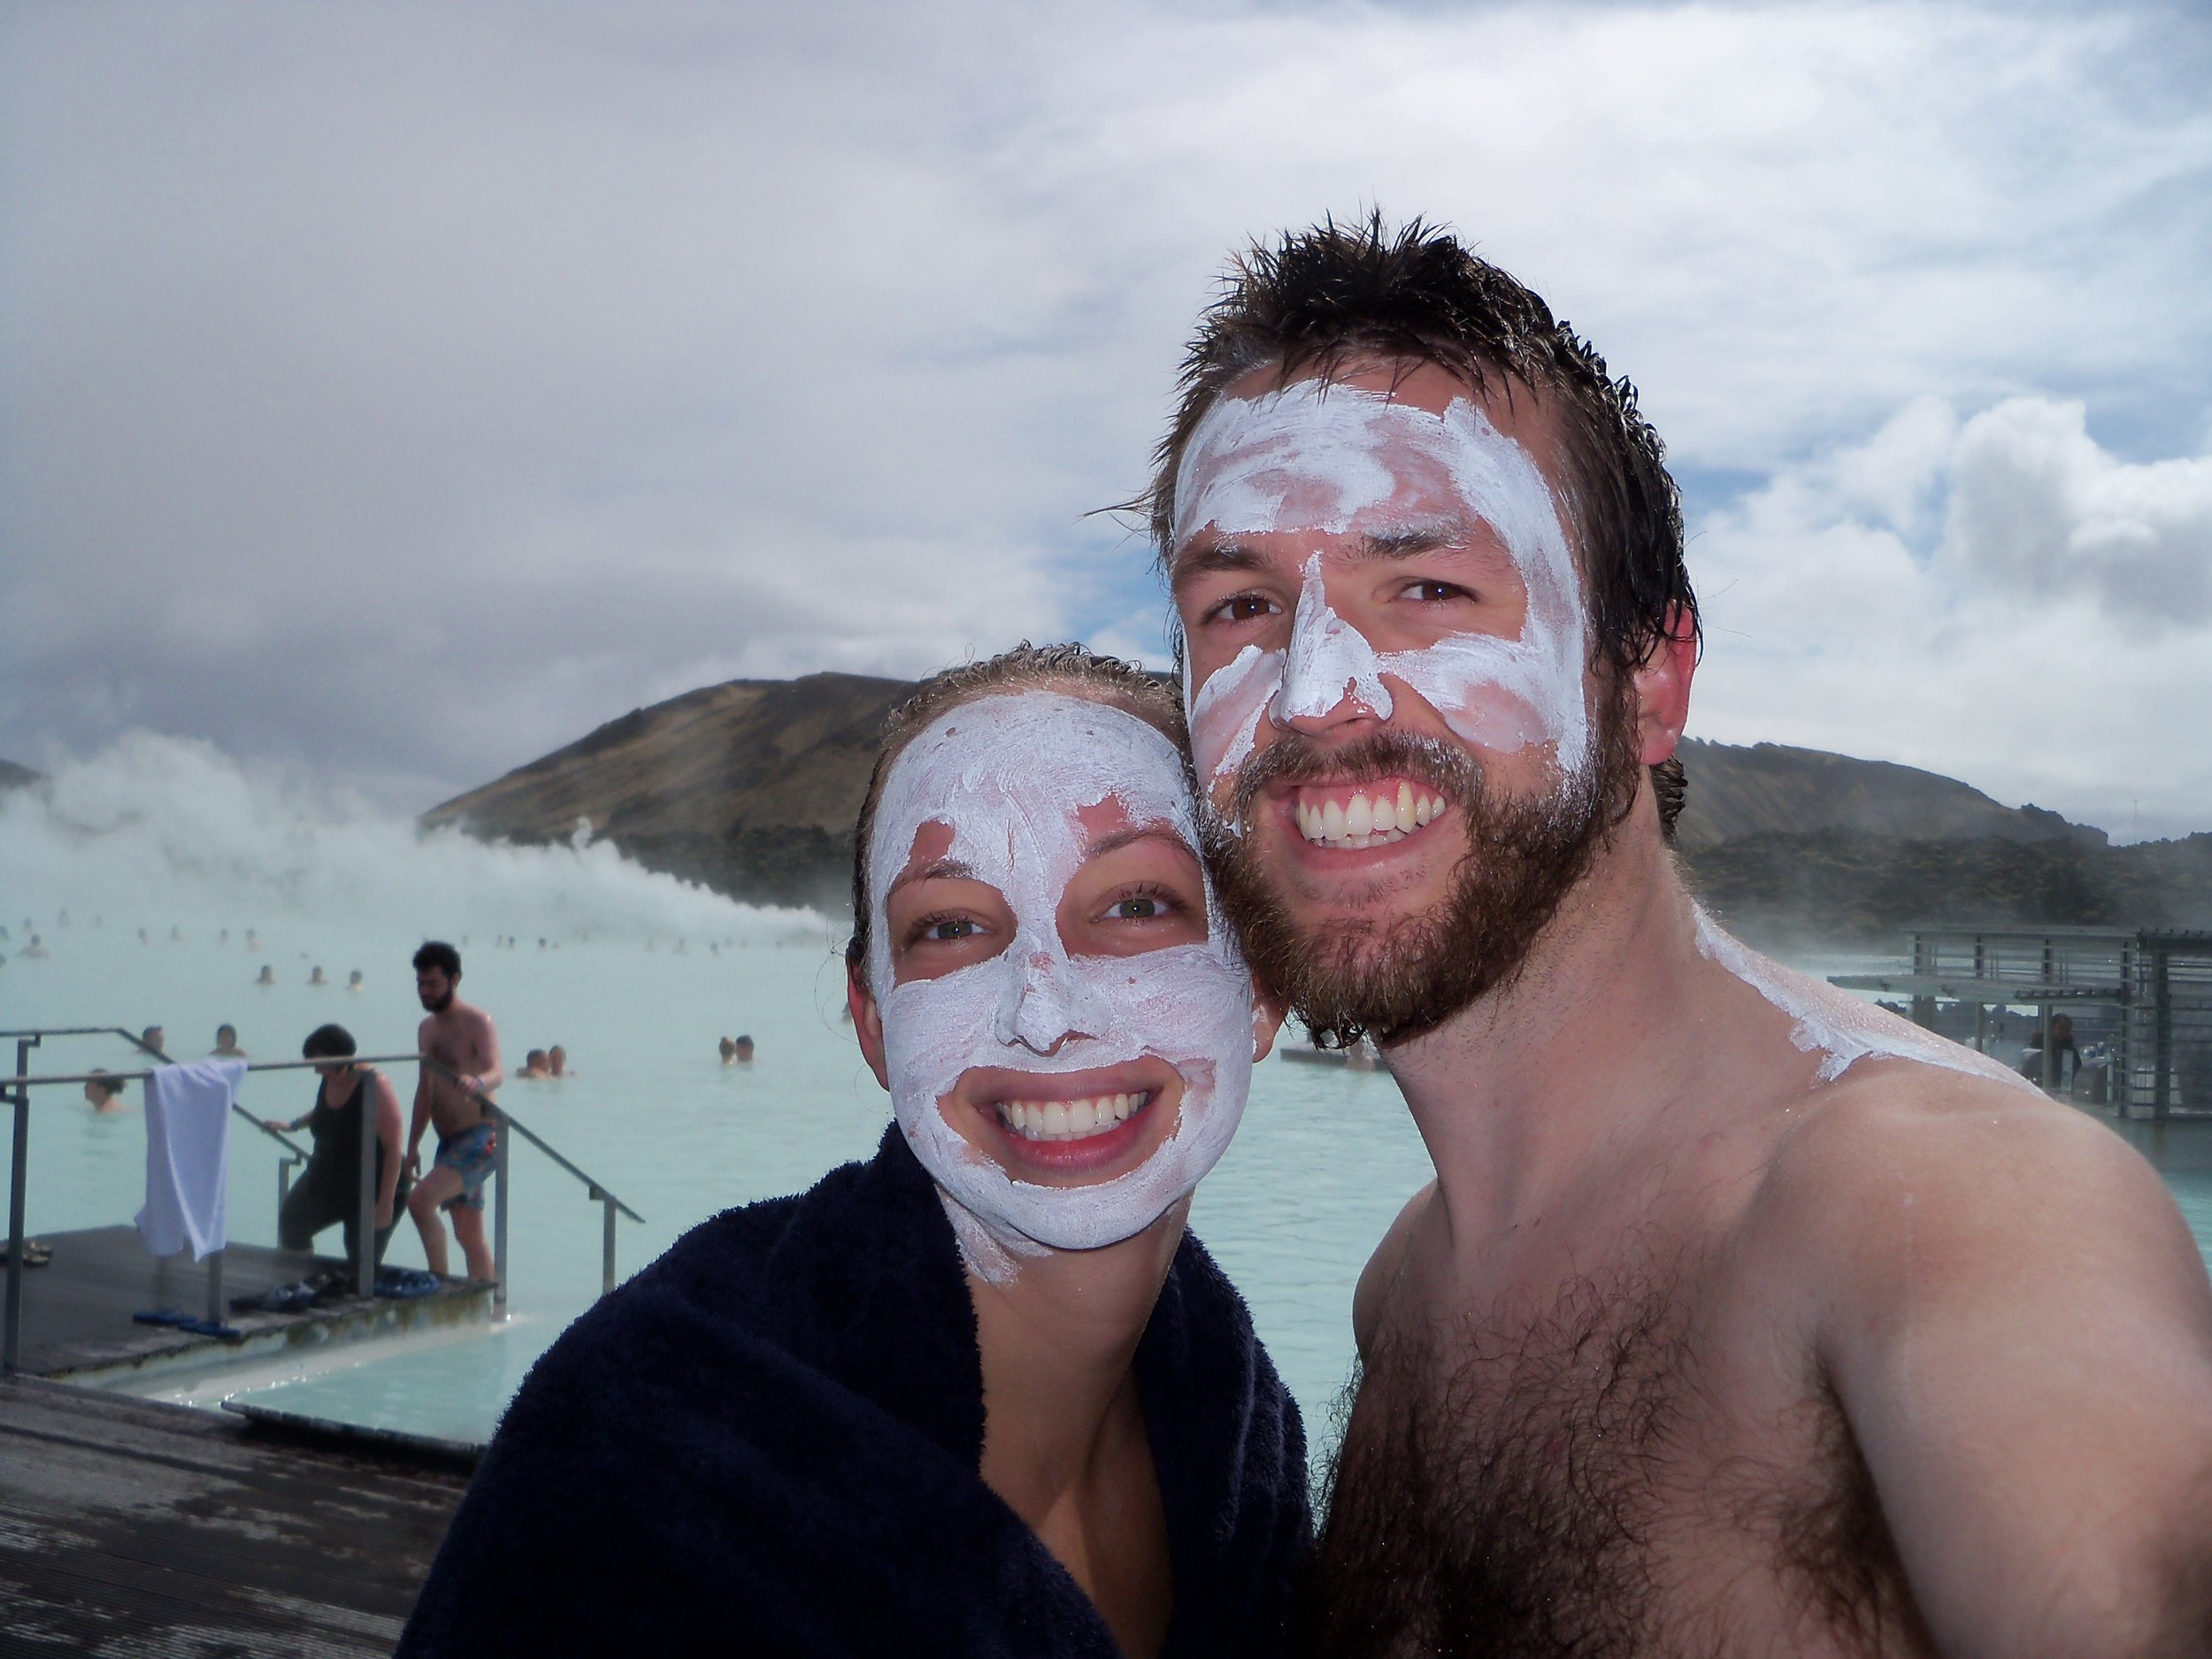 At the Blue Lagoon in Iceland